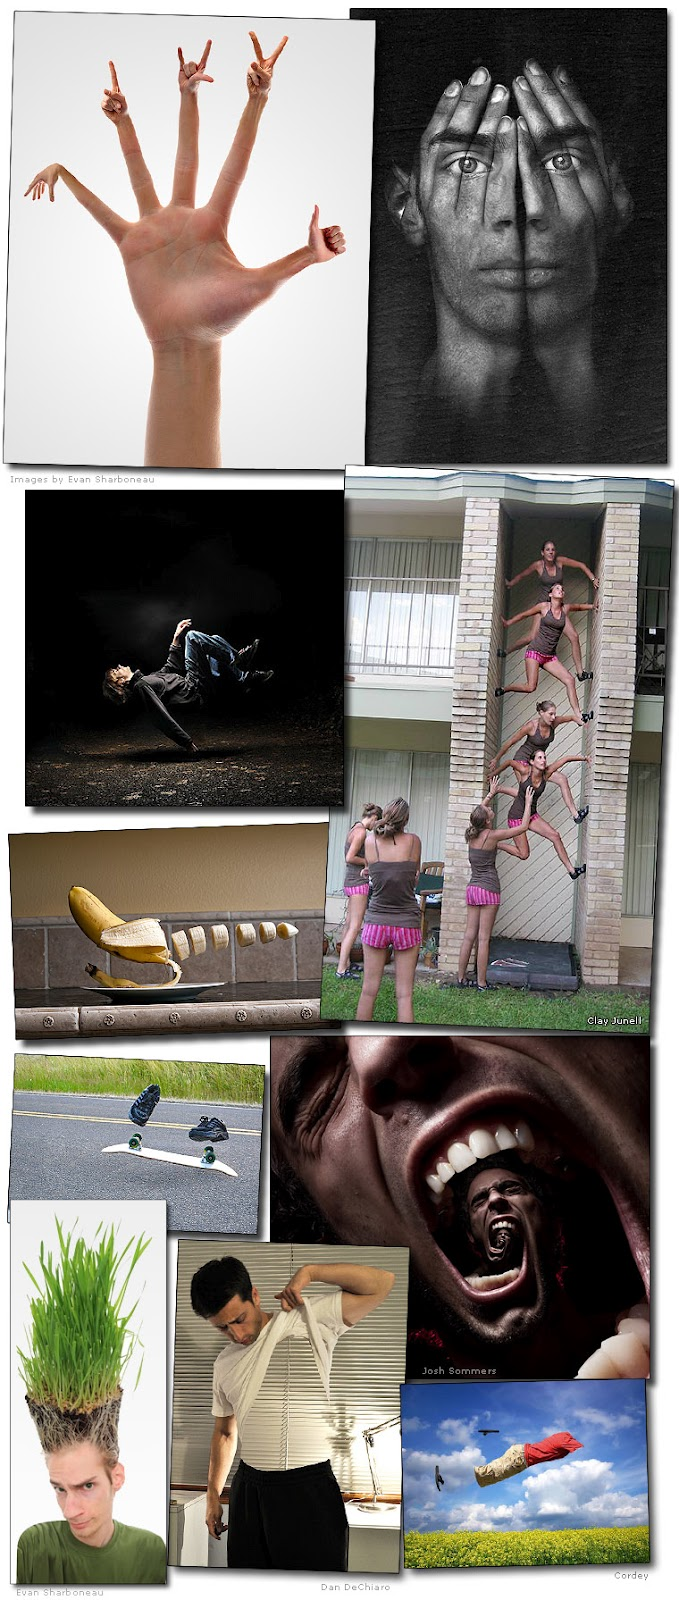 Amazing Trick Photography - Sharing Photography Tricks and ...